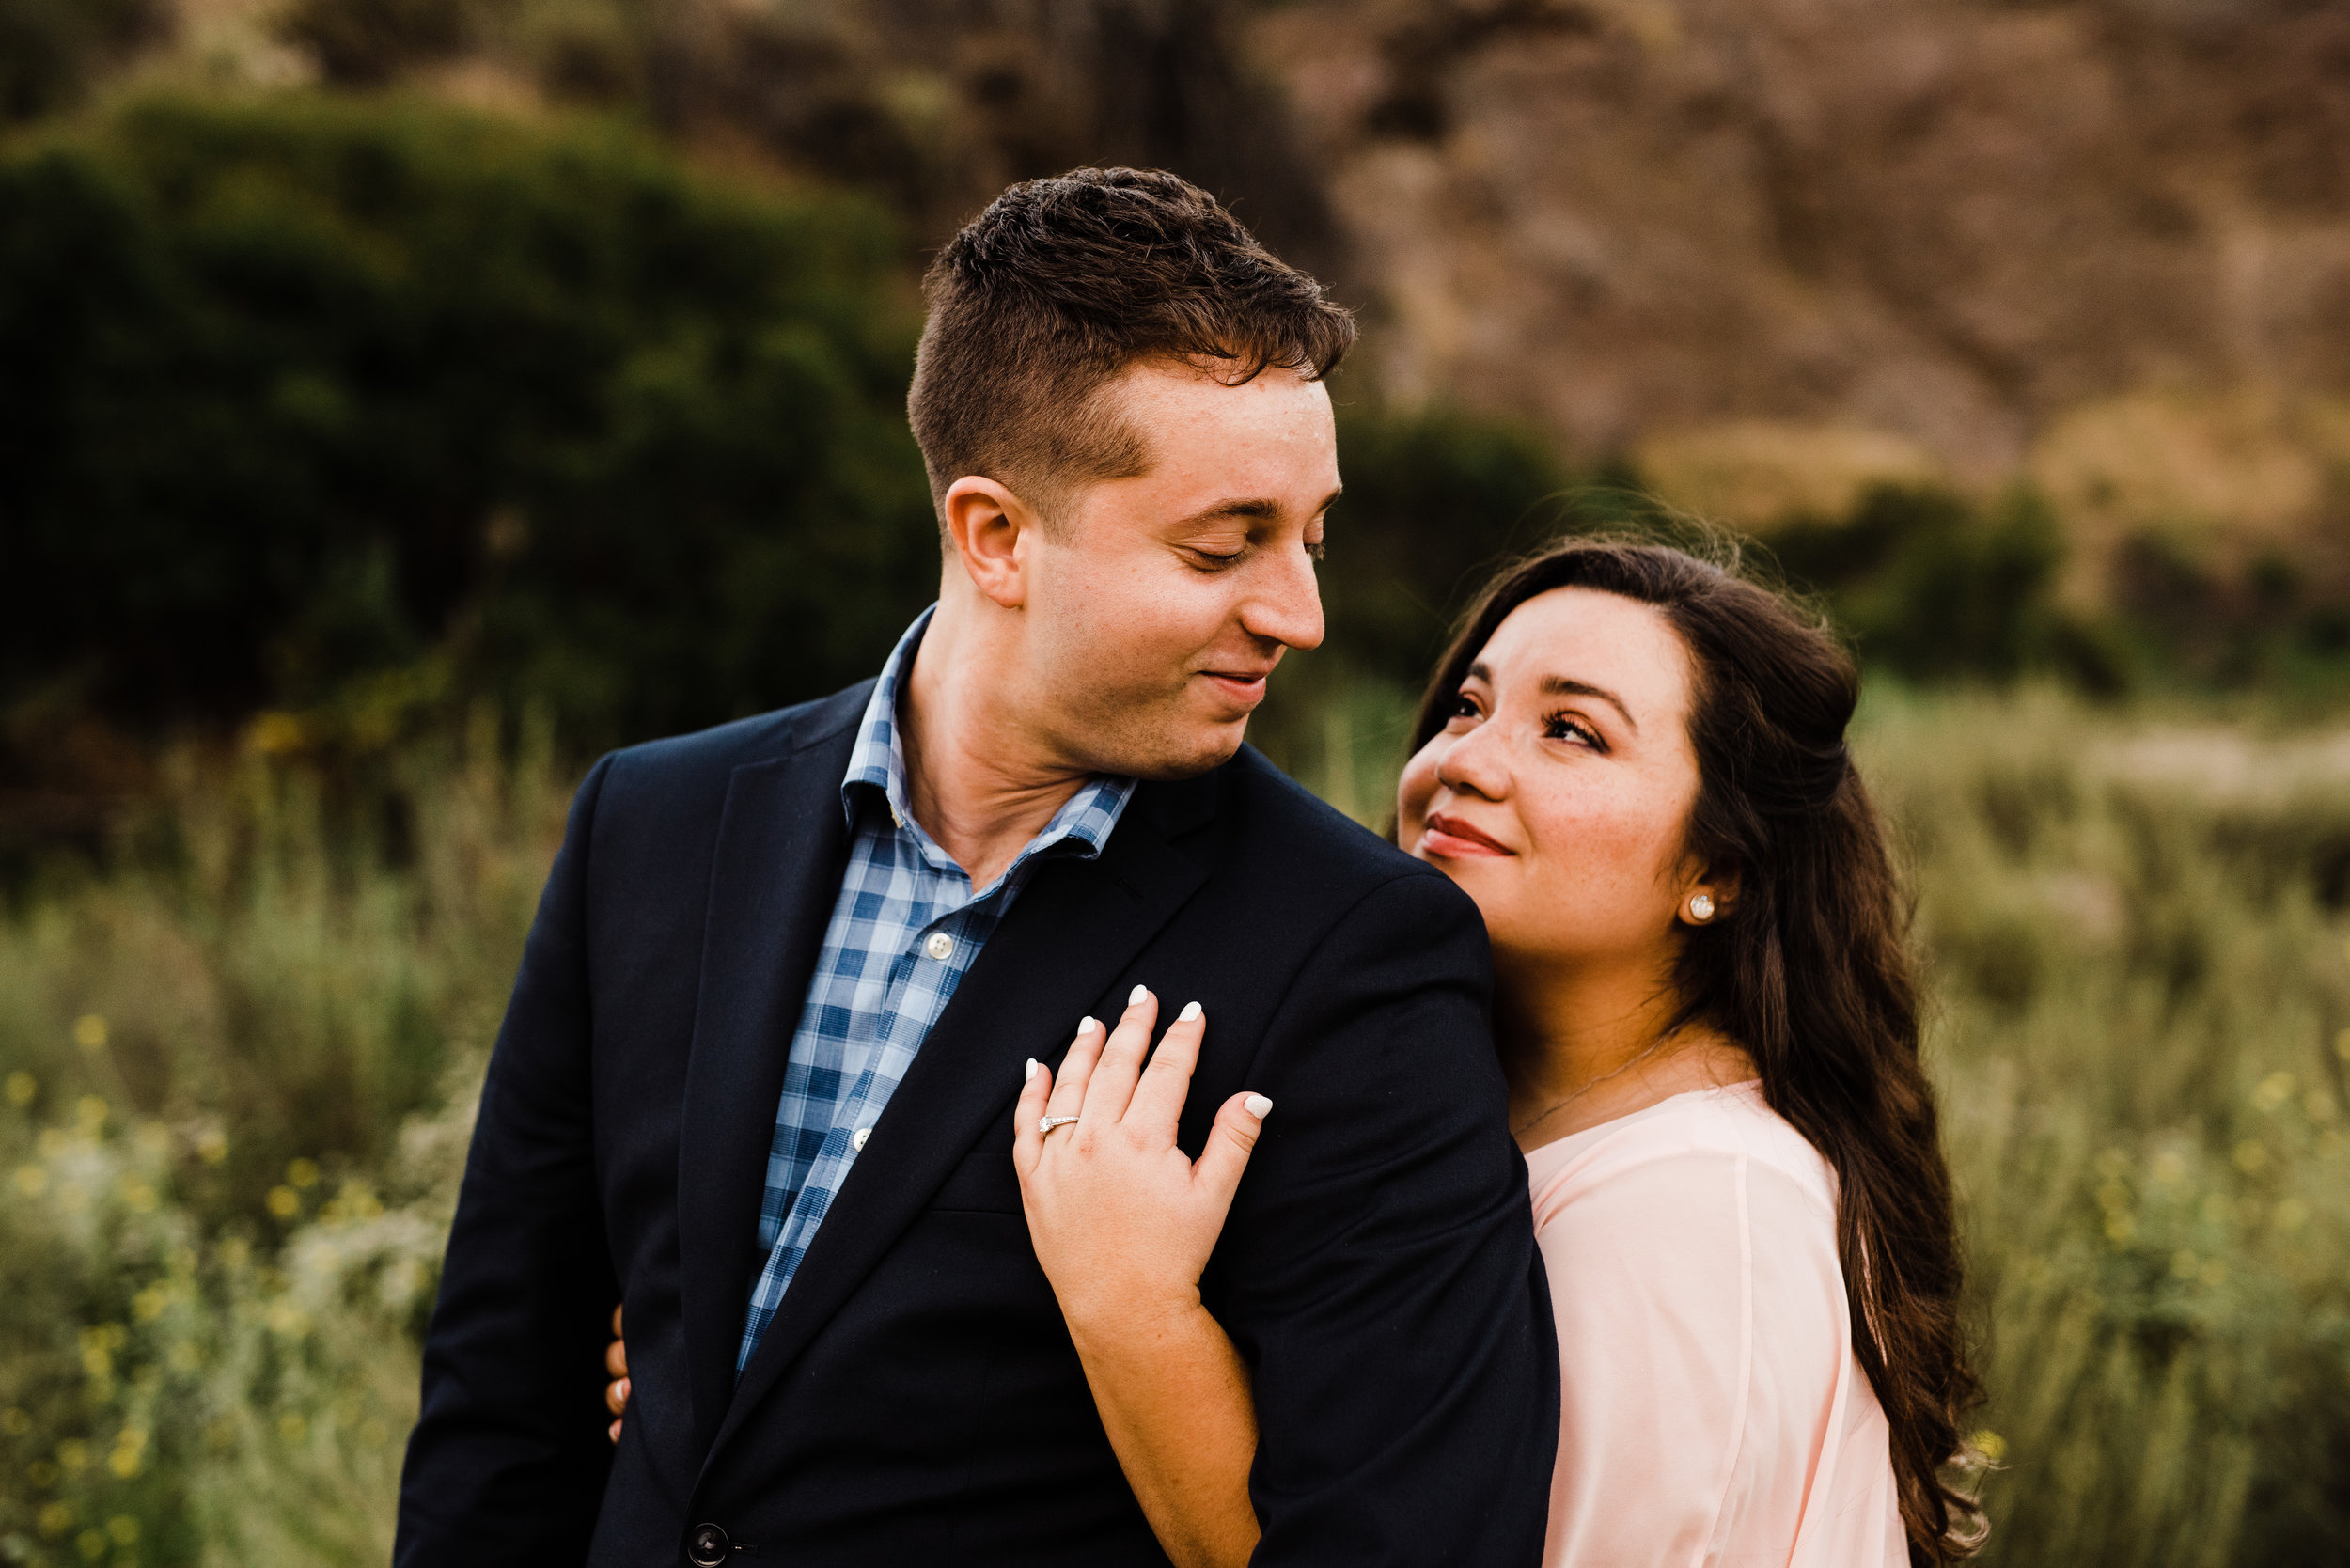 Semi-formal engagement outfits at adventurous engagement session in LA